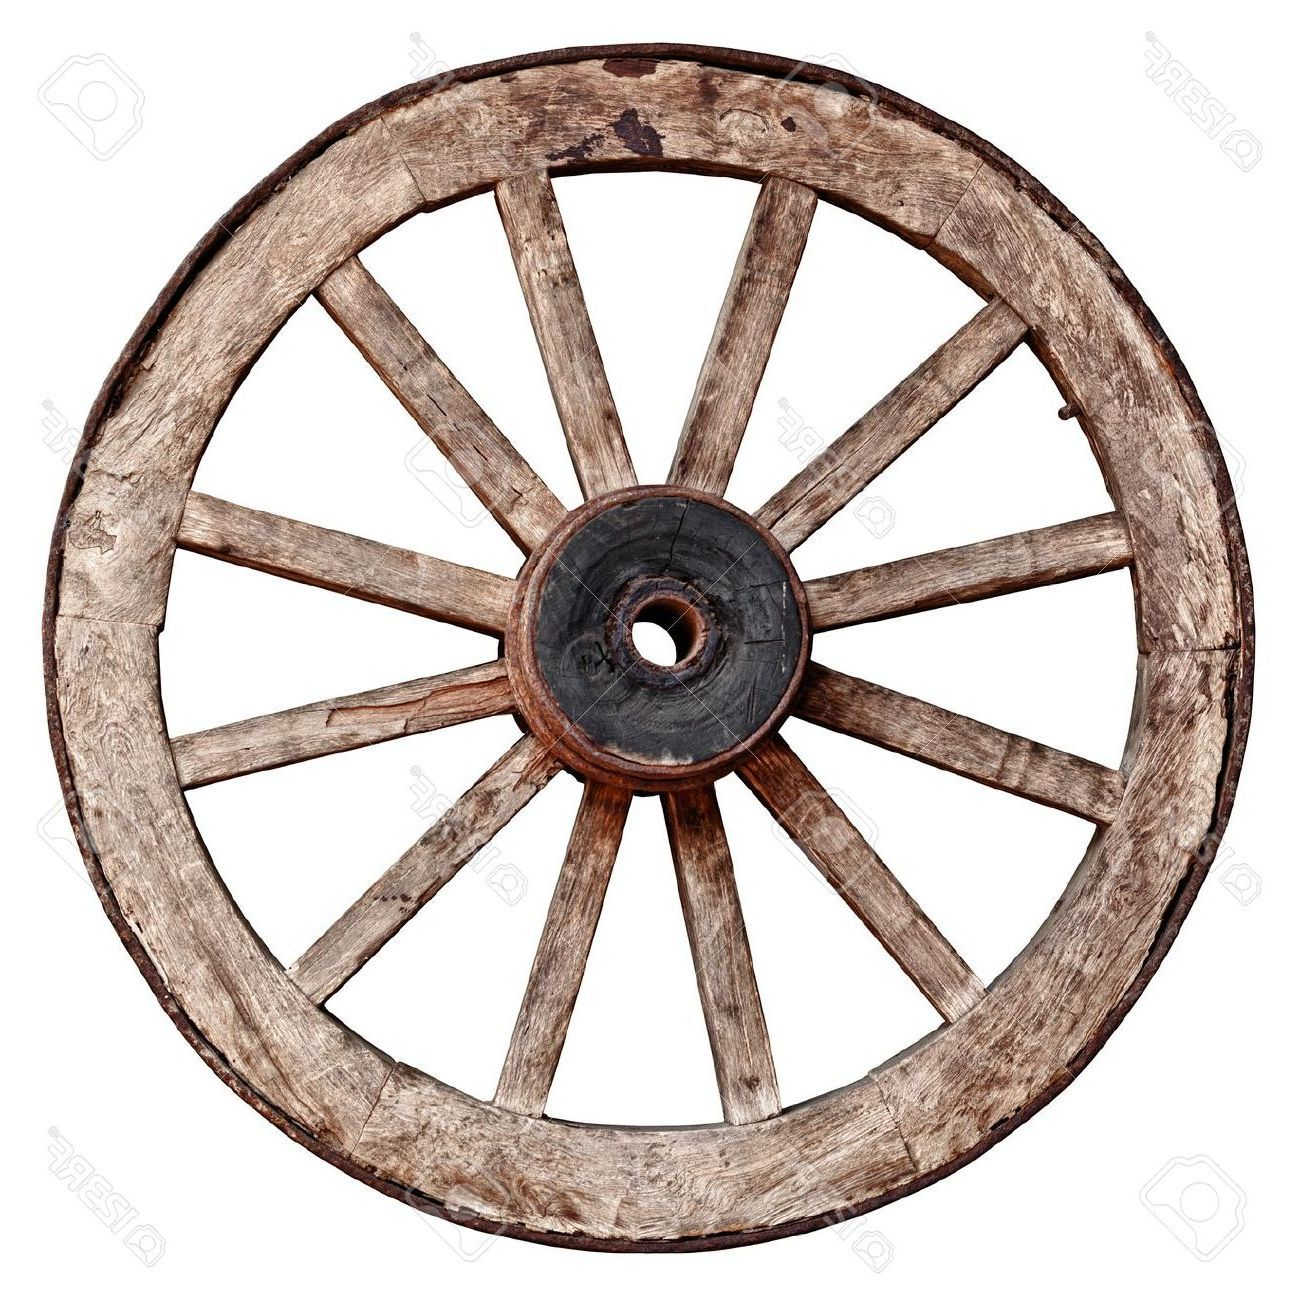 Wheel clipart carriage wheel. Pin on delish